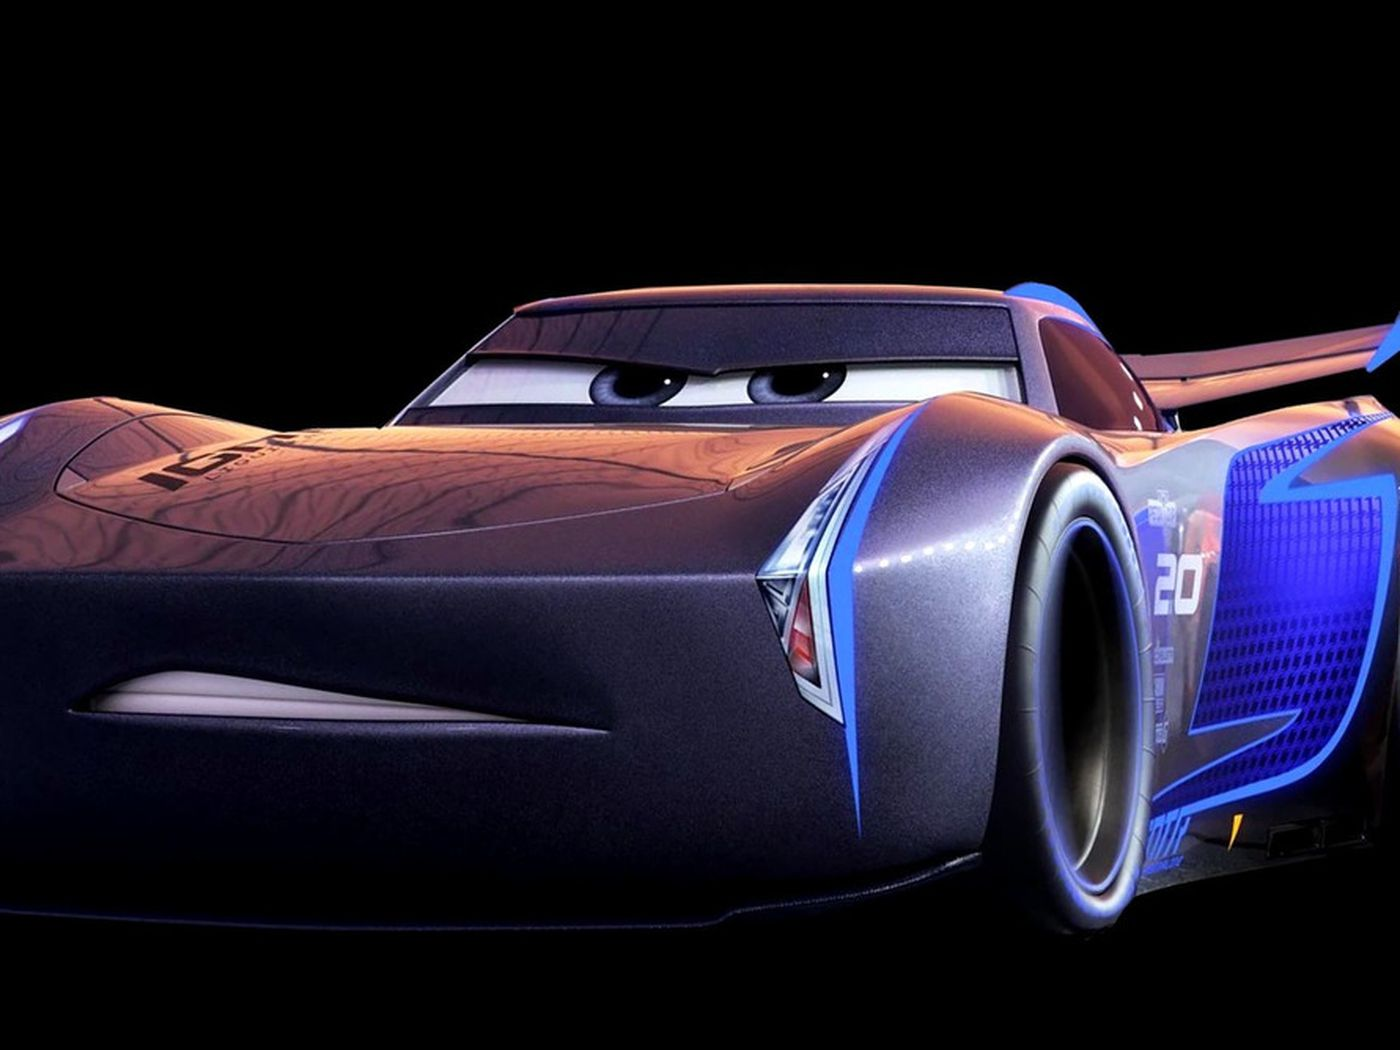 Cars 3 trailer hits on the issue of technology and driverless cars ...